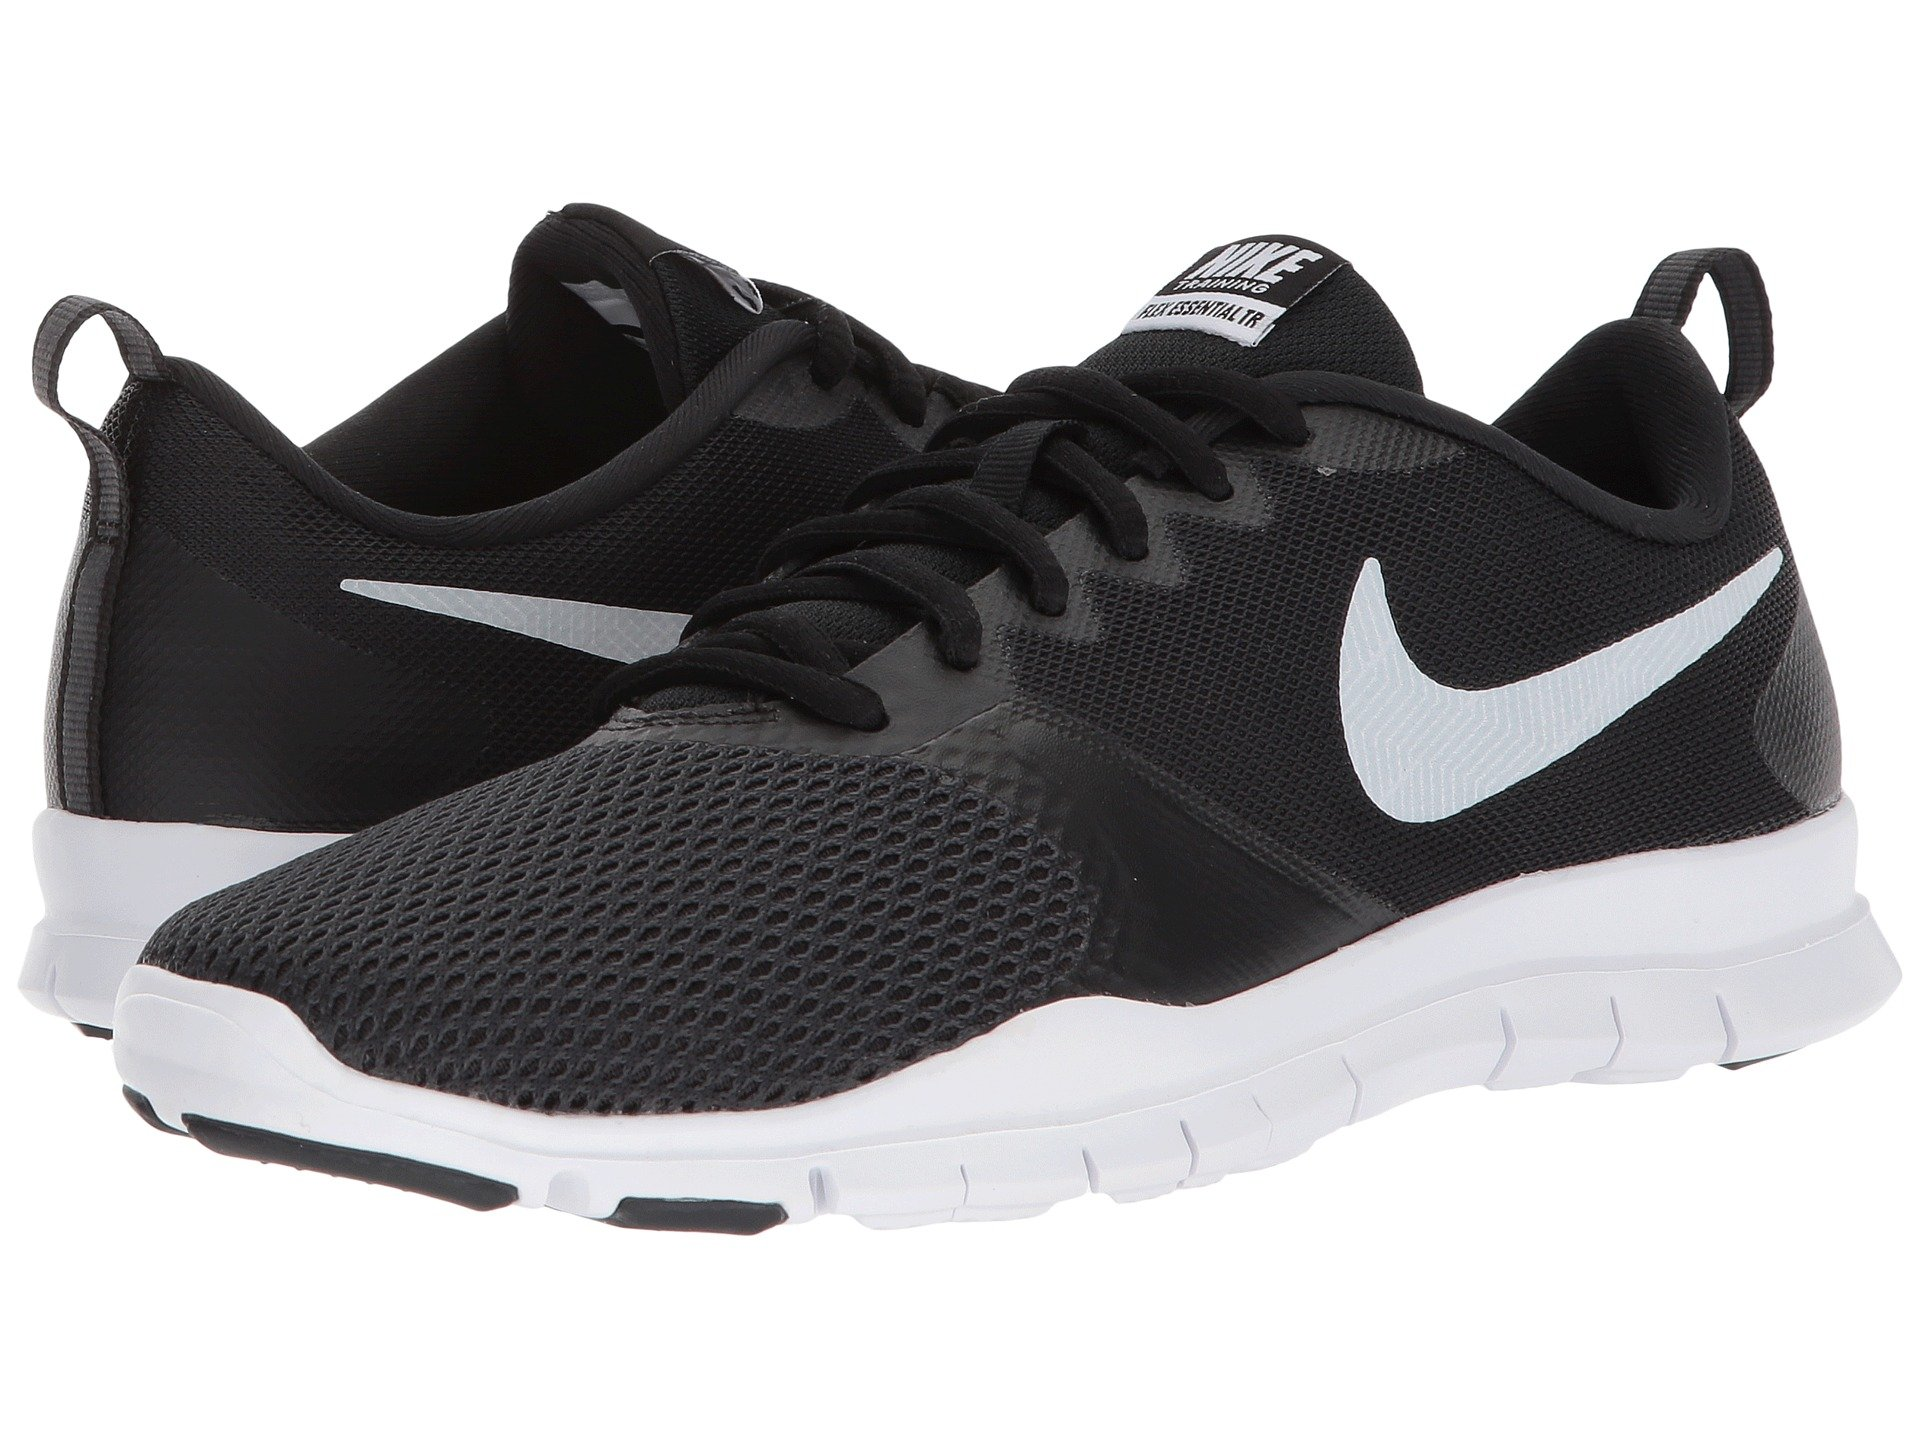 separation shoes 80e6b a5919 Women's Nike Black Shoes + FREE SHIPPING | Zappos.com